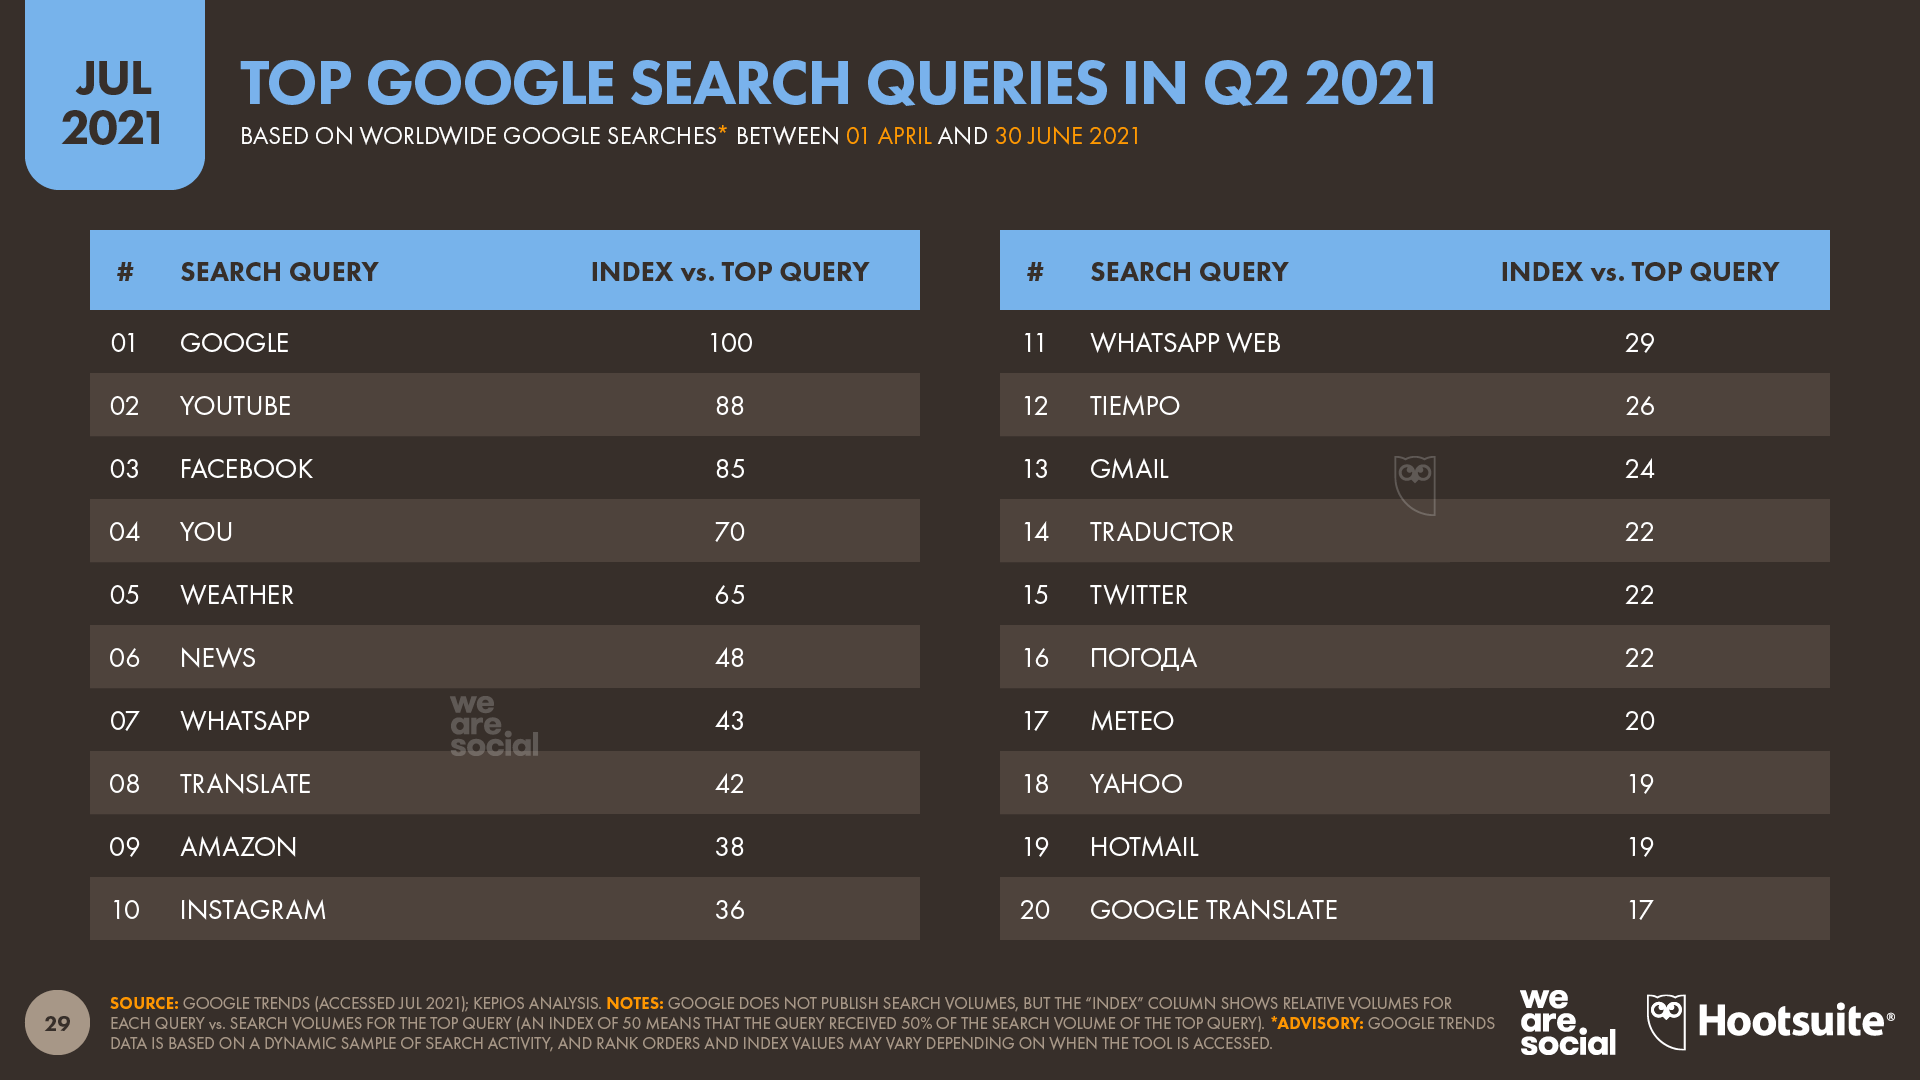 chart showing top Google search queries in Q2 2021